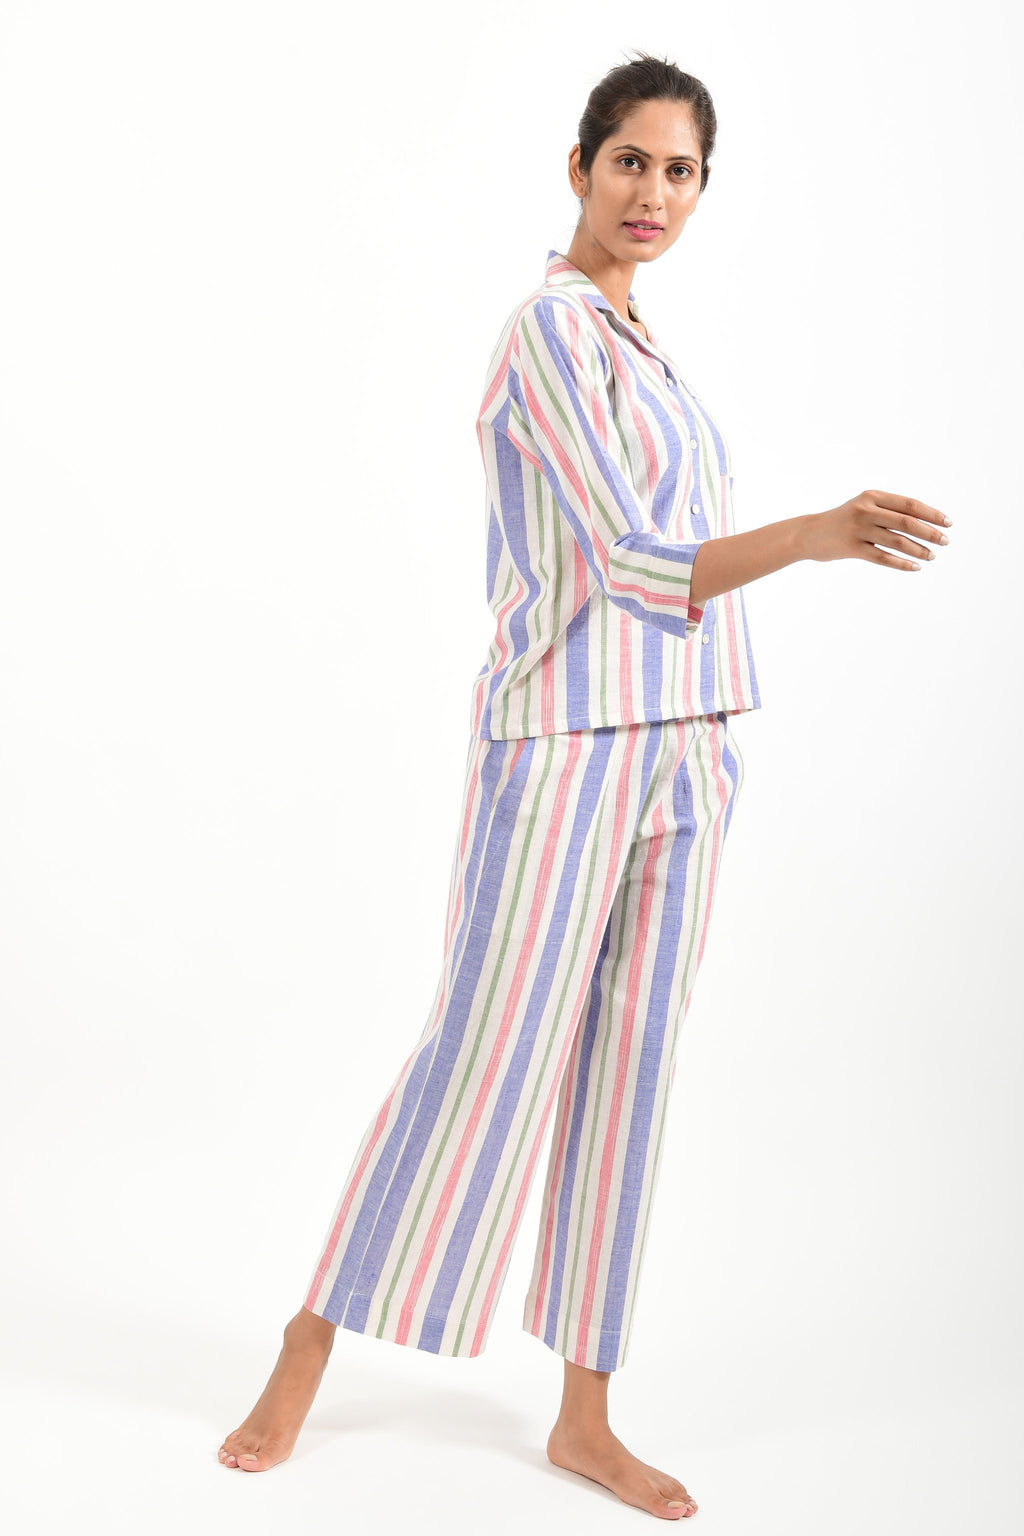 Side pose of an Indian female womenswear fashion model in a candy colored striped azo-free dyed handspun and handwoven khadi cotton nightwear pyjama & shirt by Cotton Rack.